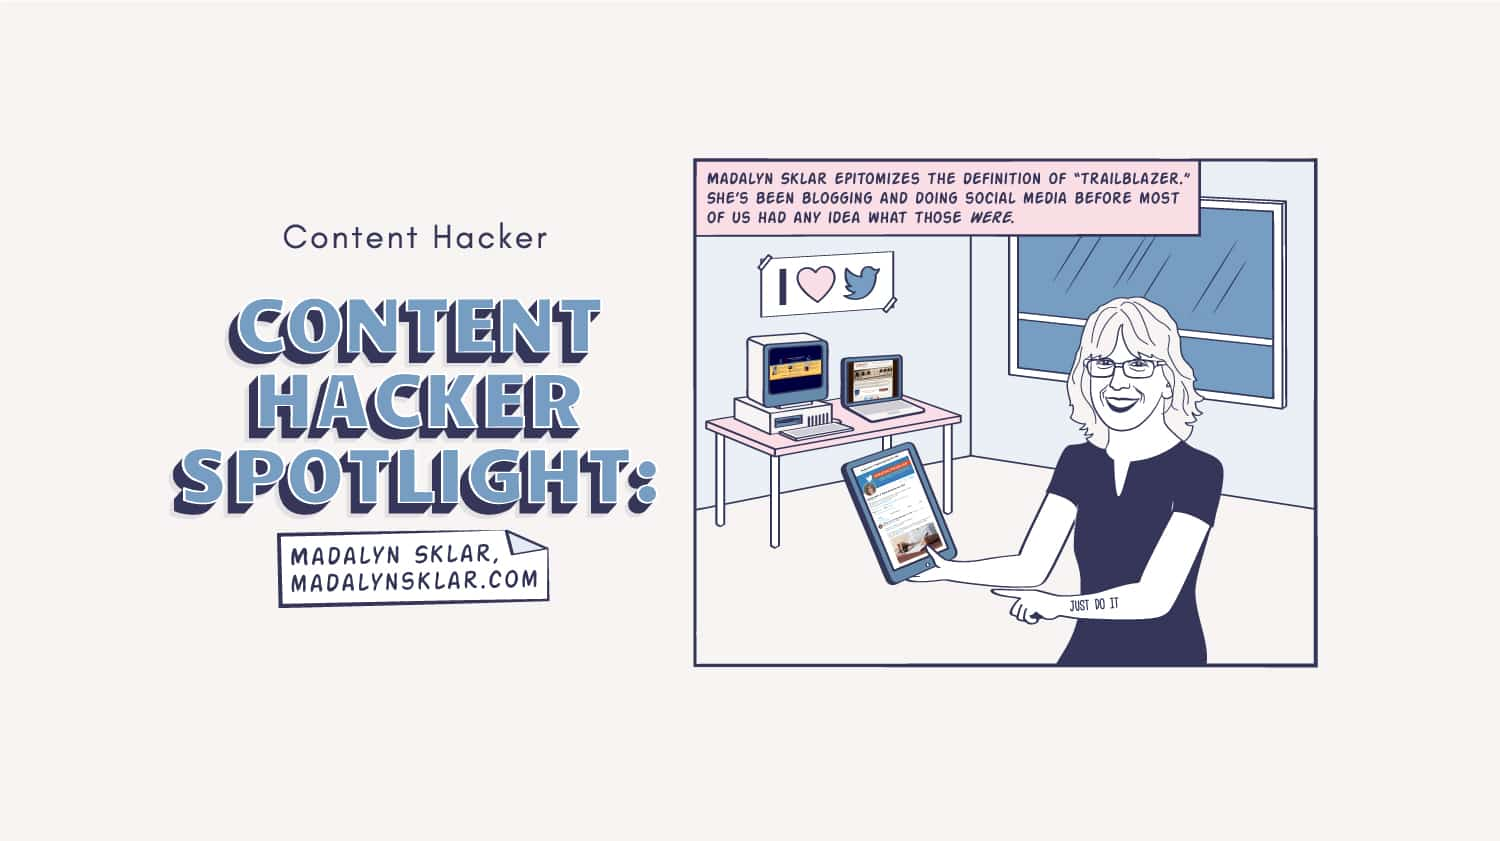 madalyn sklar content hacker